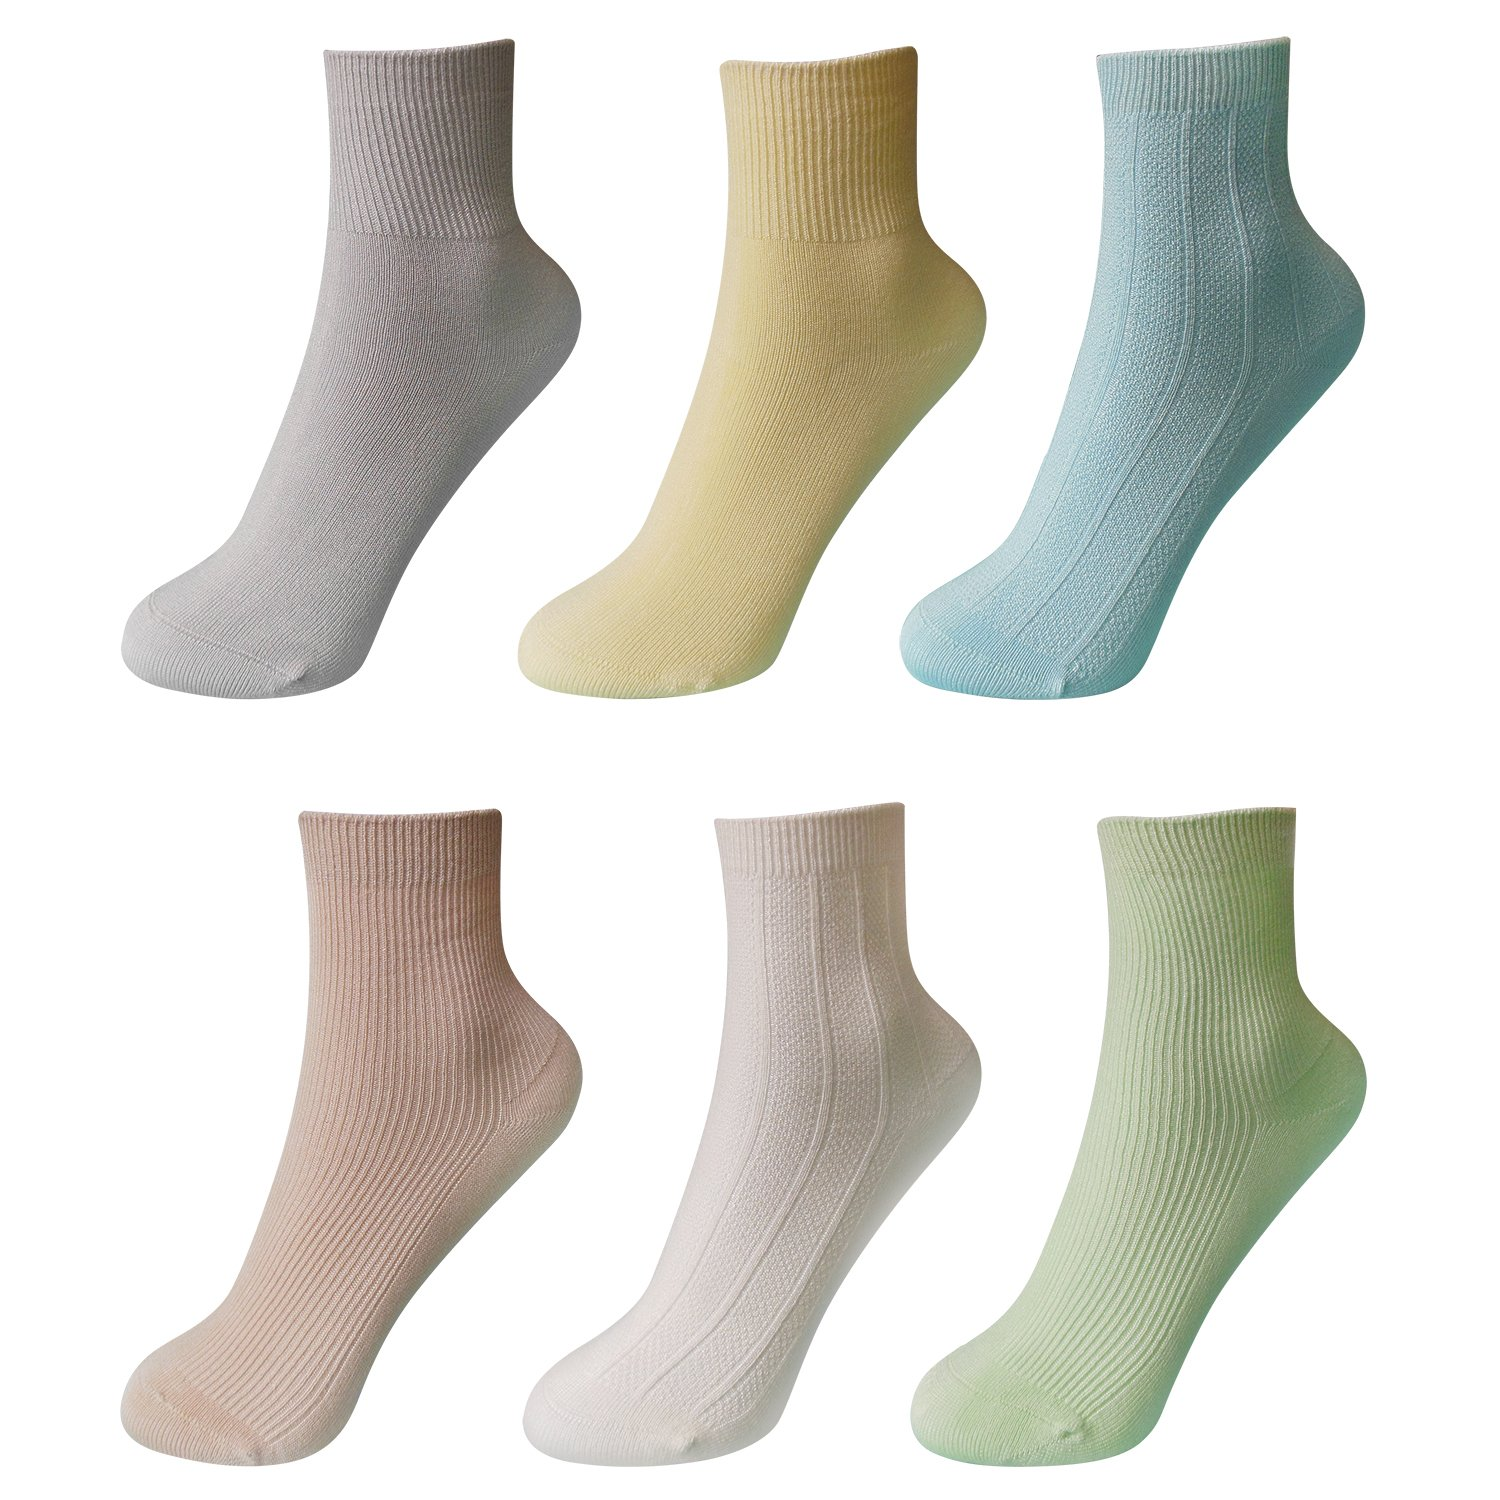 6 Pairs Of Children's Non-slip Toddler Socks, Wood Fiber Soft Phospholipid Skin-friendly Anti-slip socks, The Present For Child, (0-1 Y, 1-3 Y, 3-6 Y) Suitable For Boys and Girls.